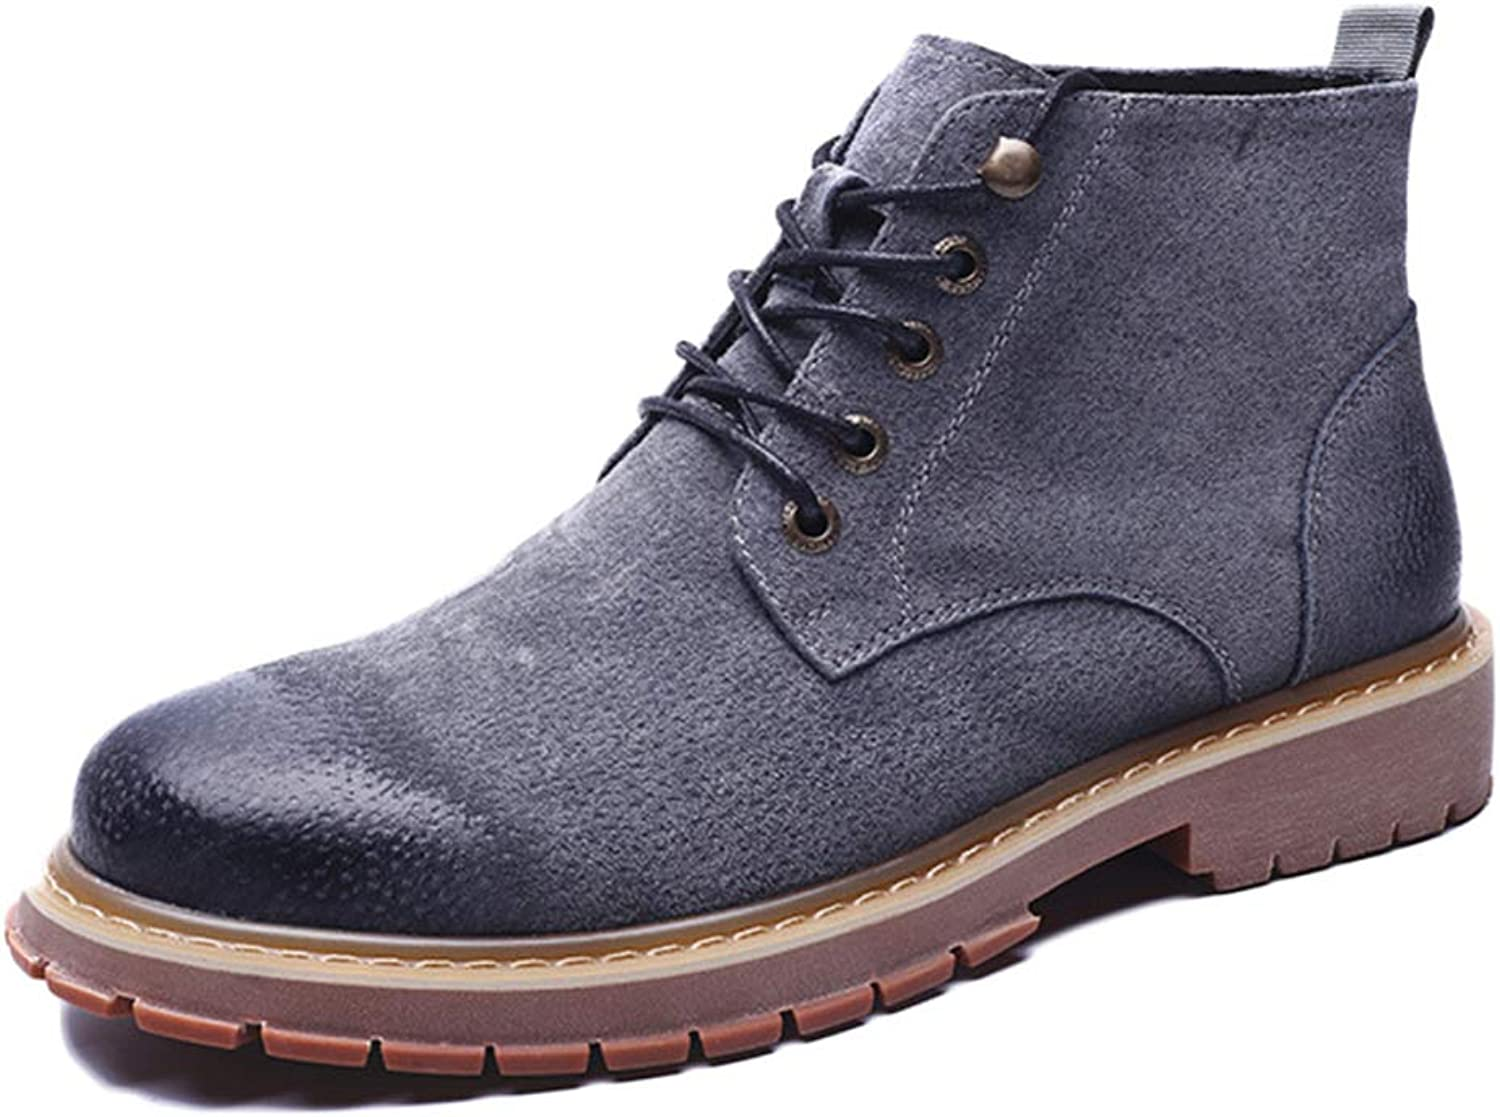 Men's Boots Chelsea Boots Oxblood Safety Brogue Classic Martin Boots Ankle Boots Tooling